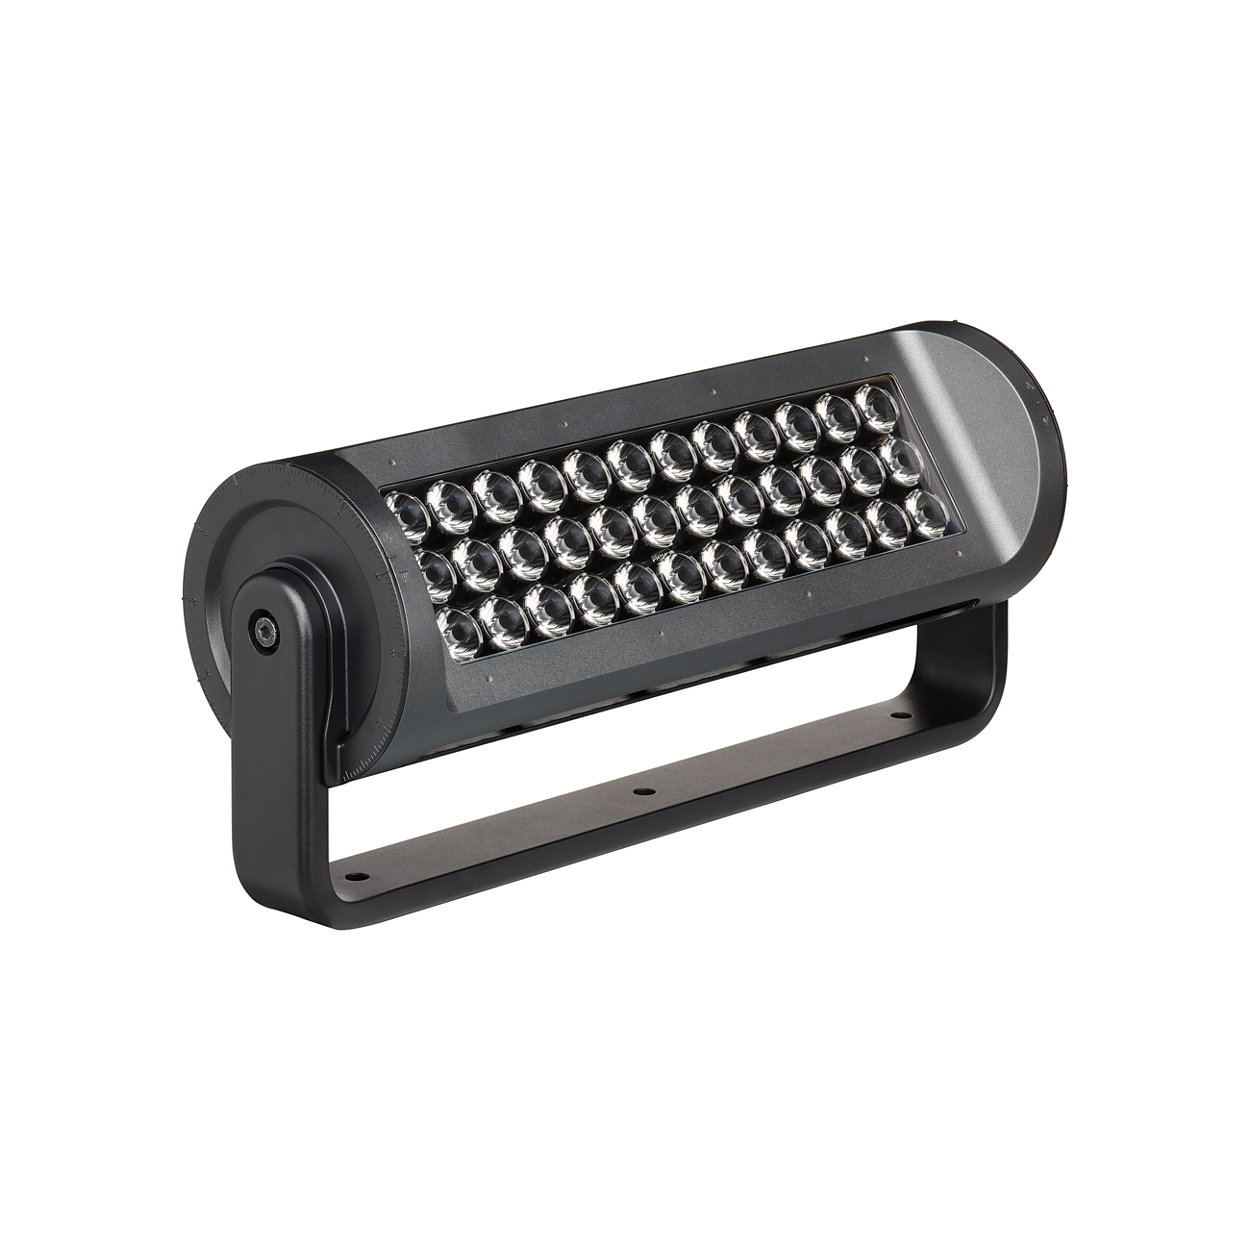 A high-performance long-throw exterior LED luminaire with IntelliHue technology